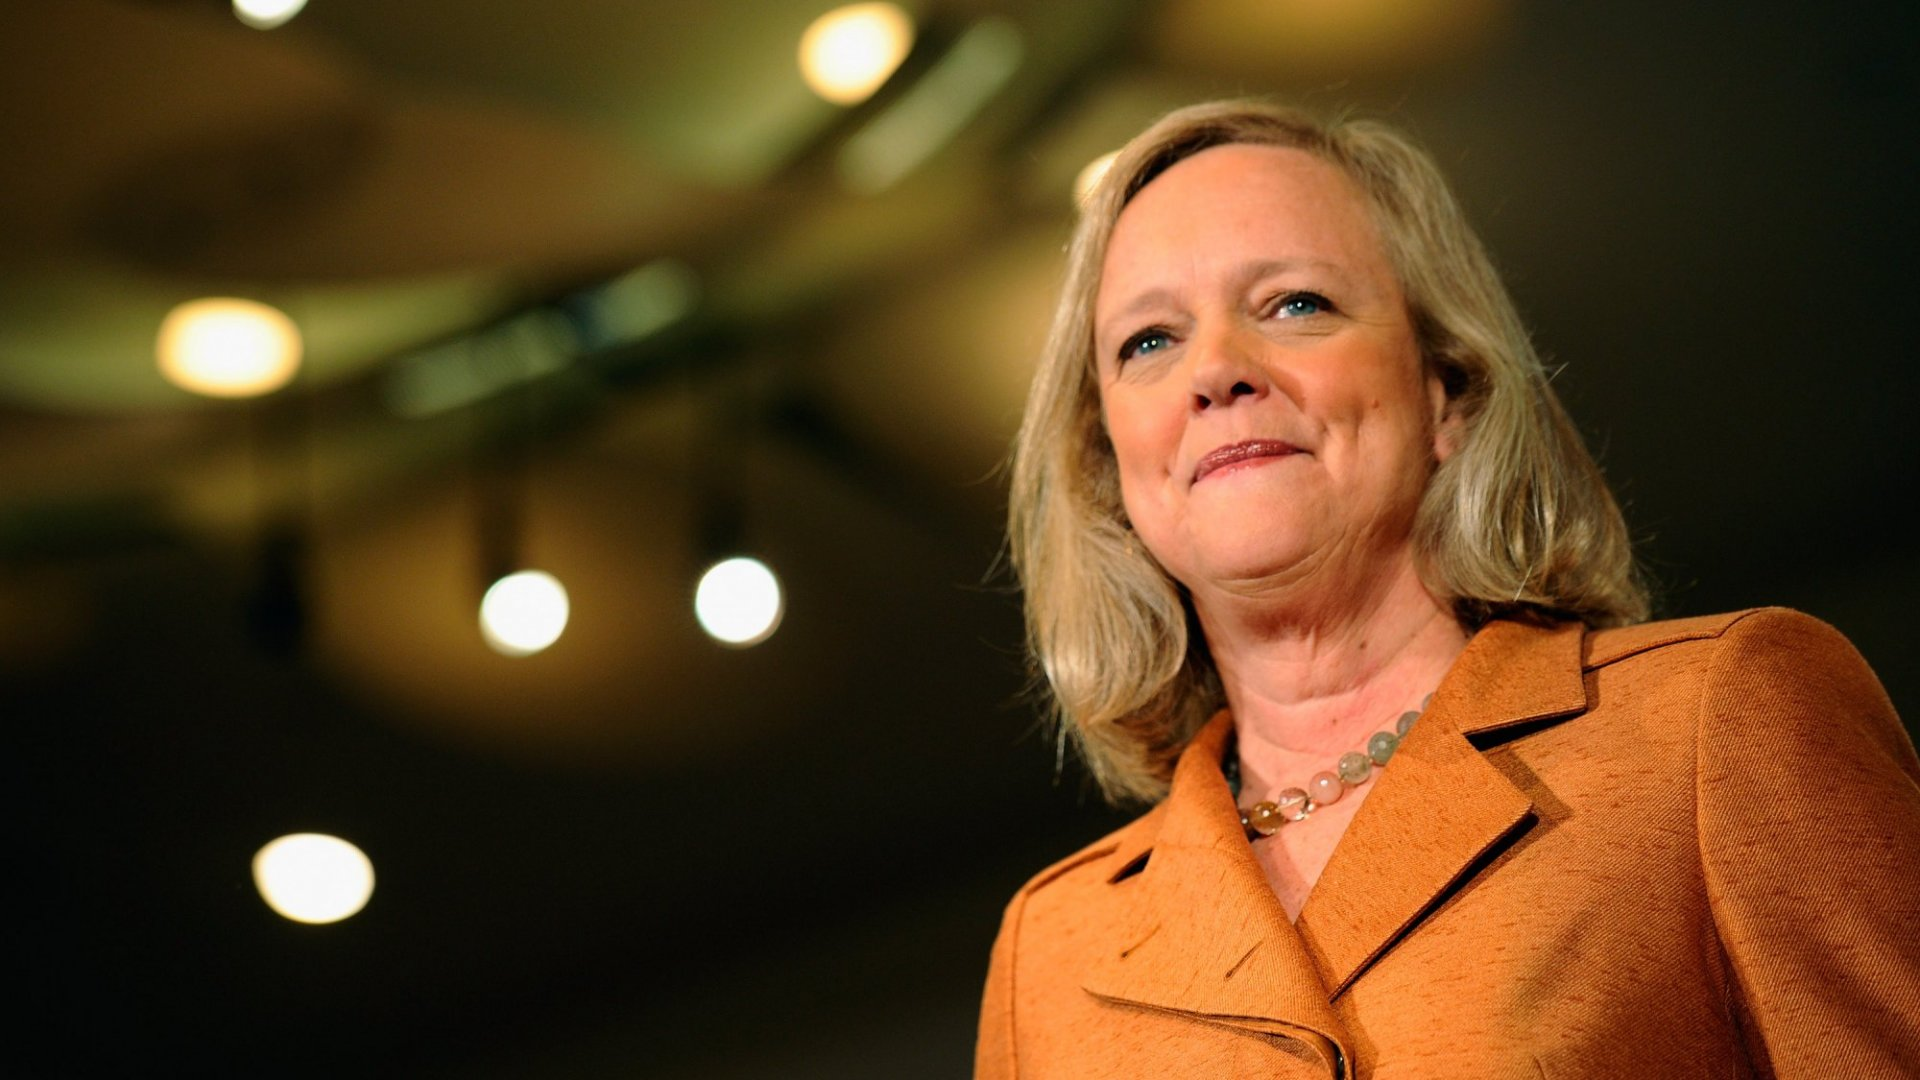 Meg Whitman: Obsess Over What Your Company Does Right, Not Wrong